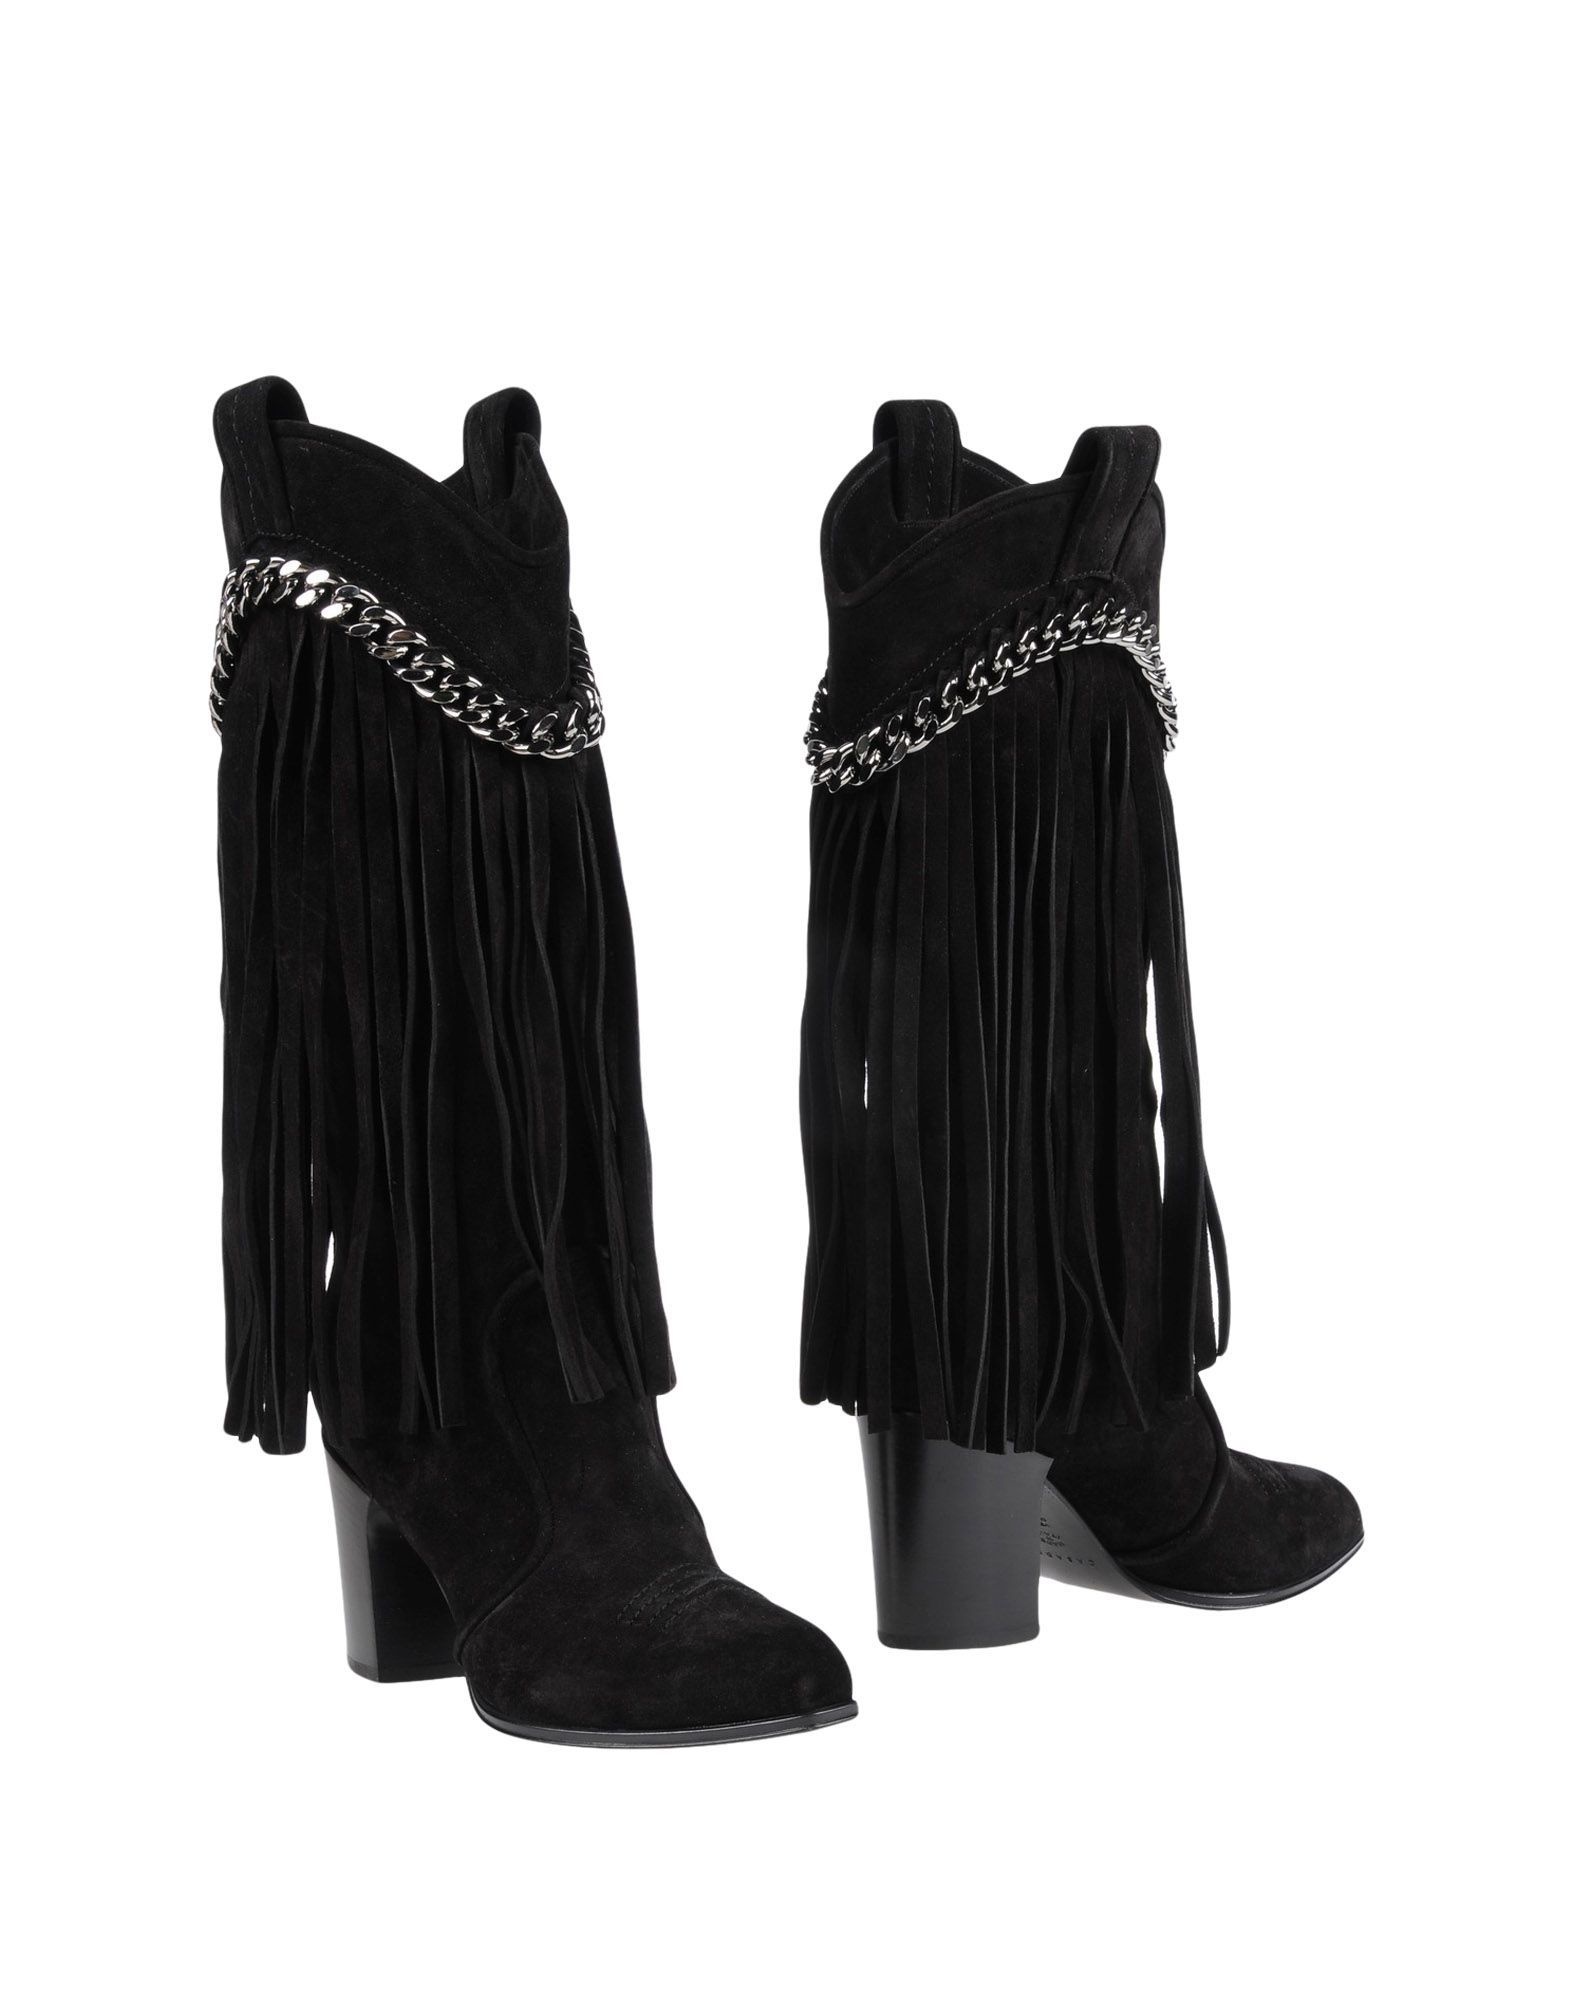 Casadei Black Leather Fringed Boots